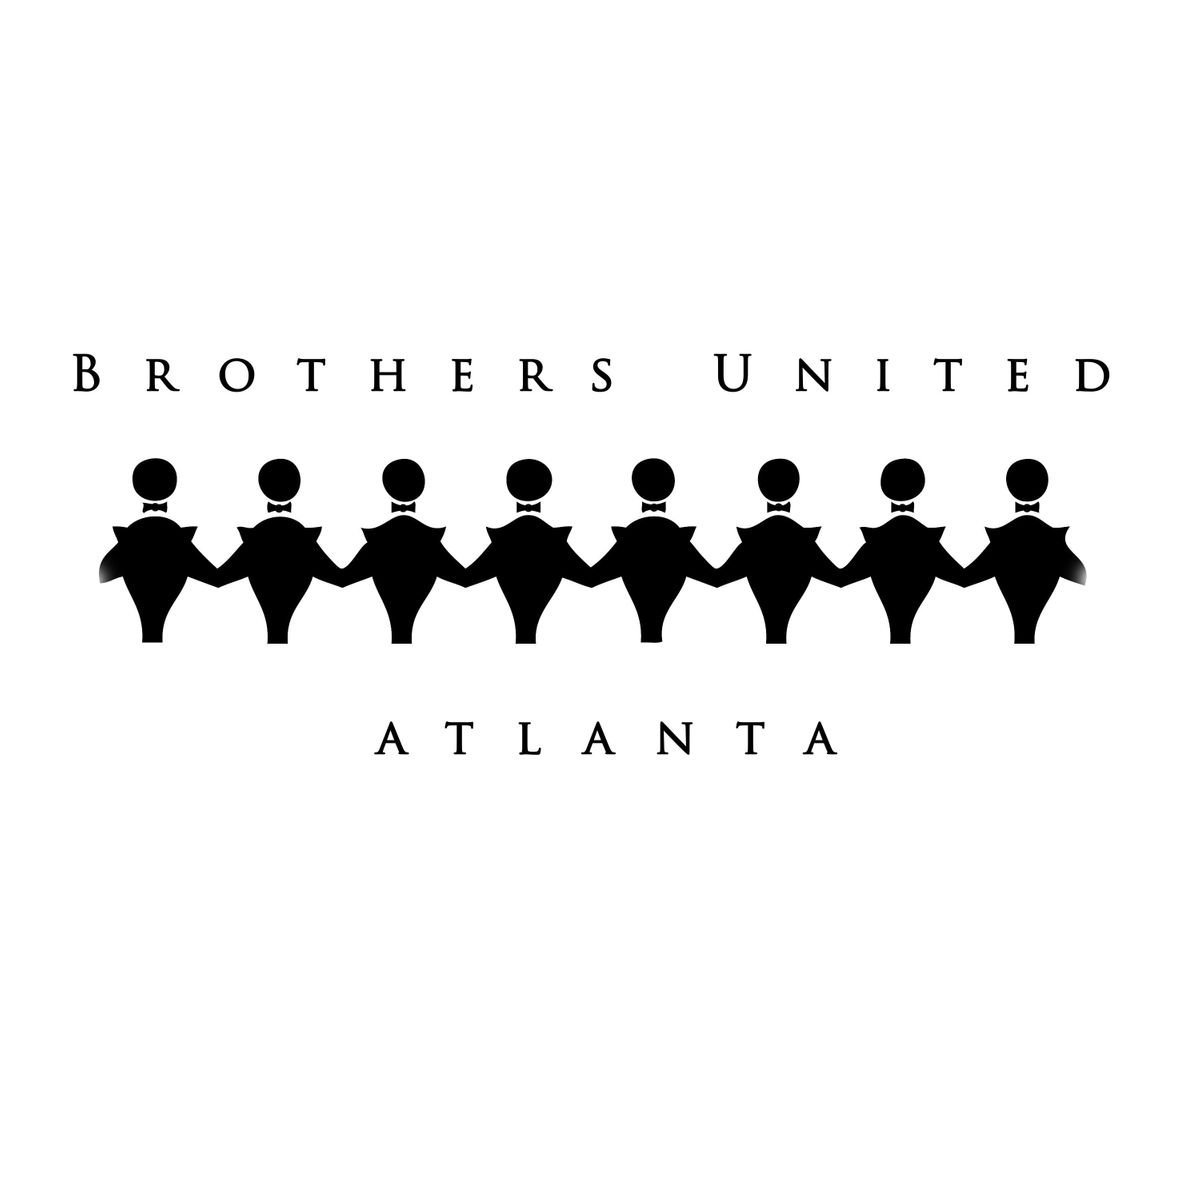 Brothers United ATL Monthly Meeting March 2019